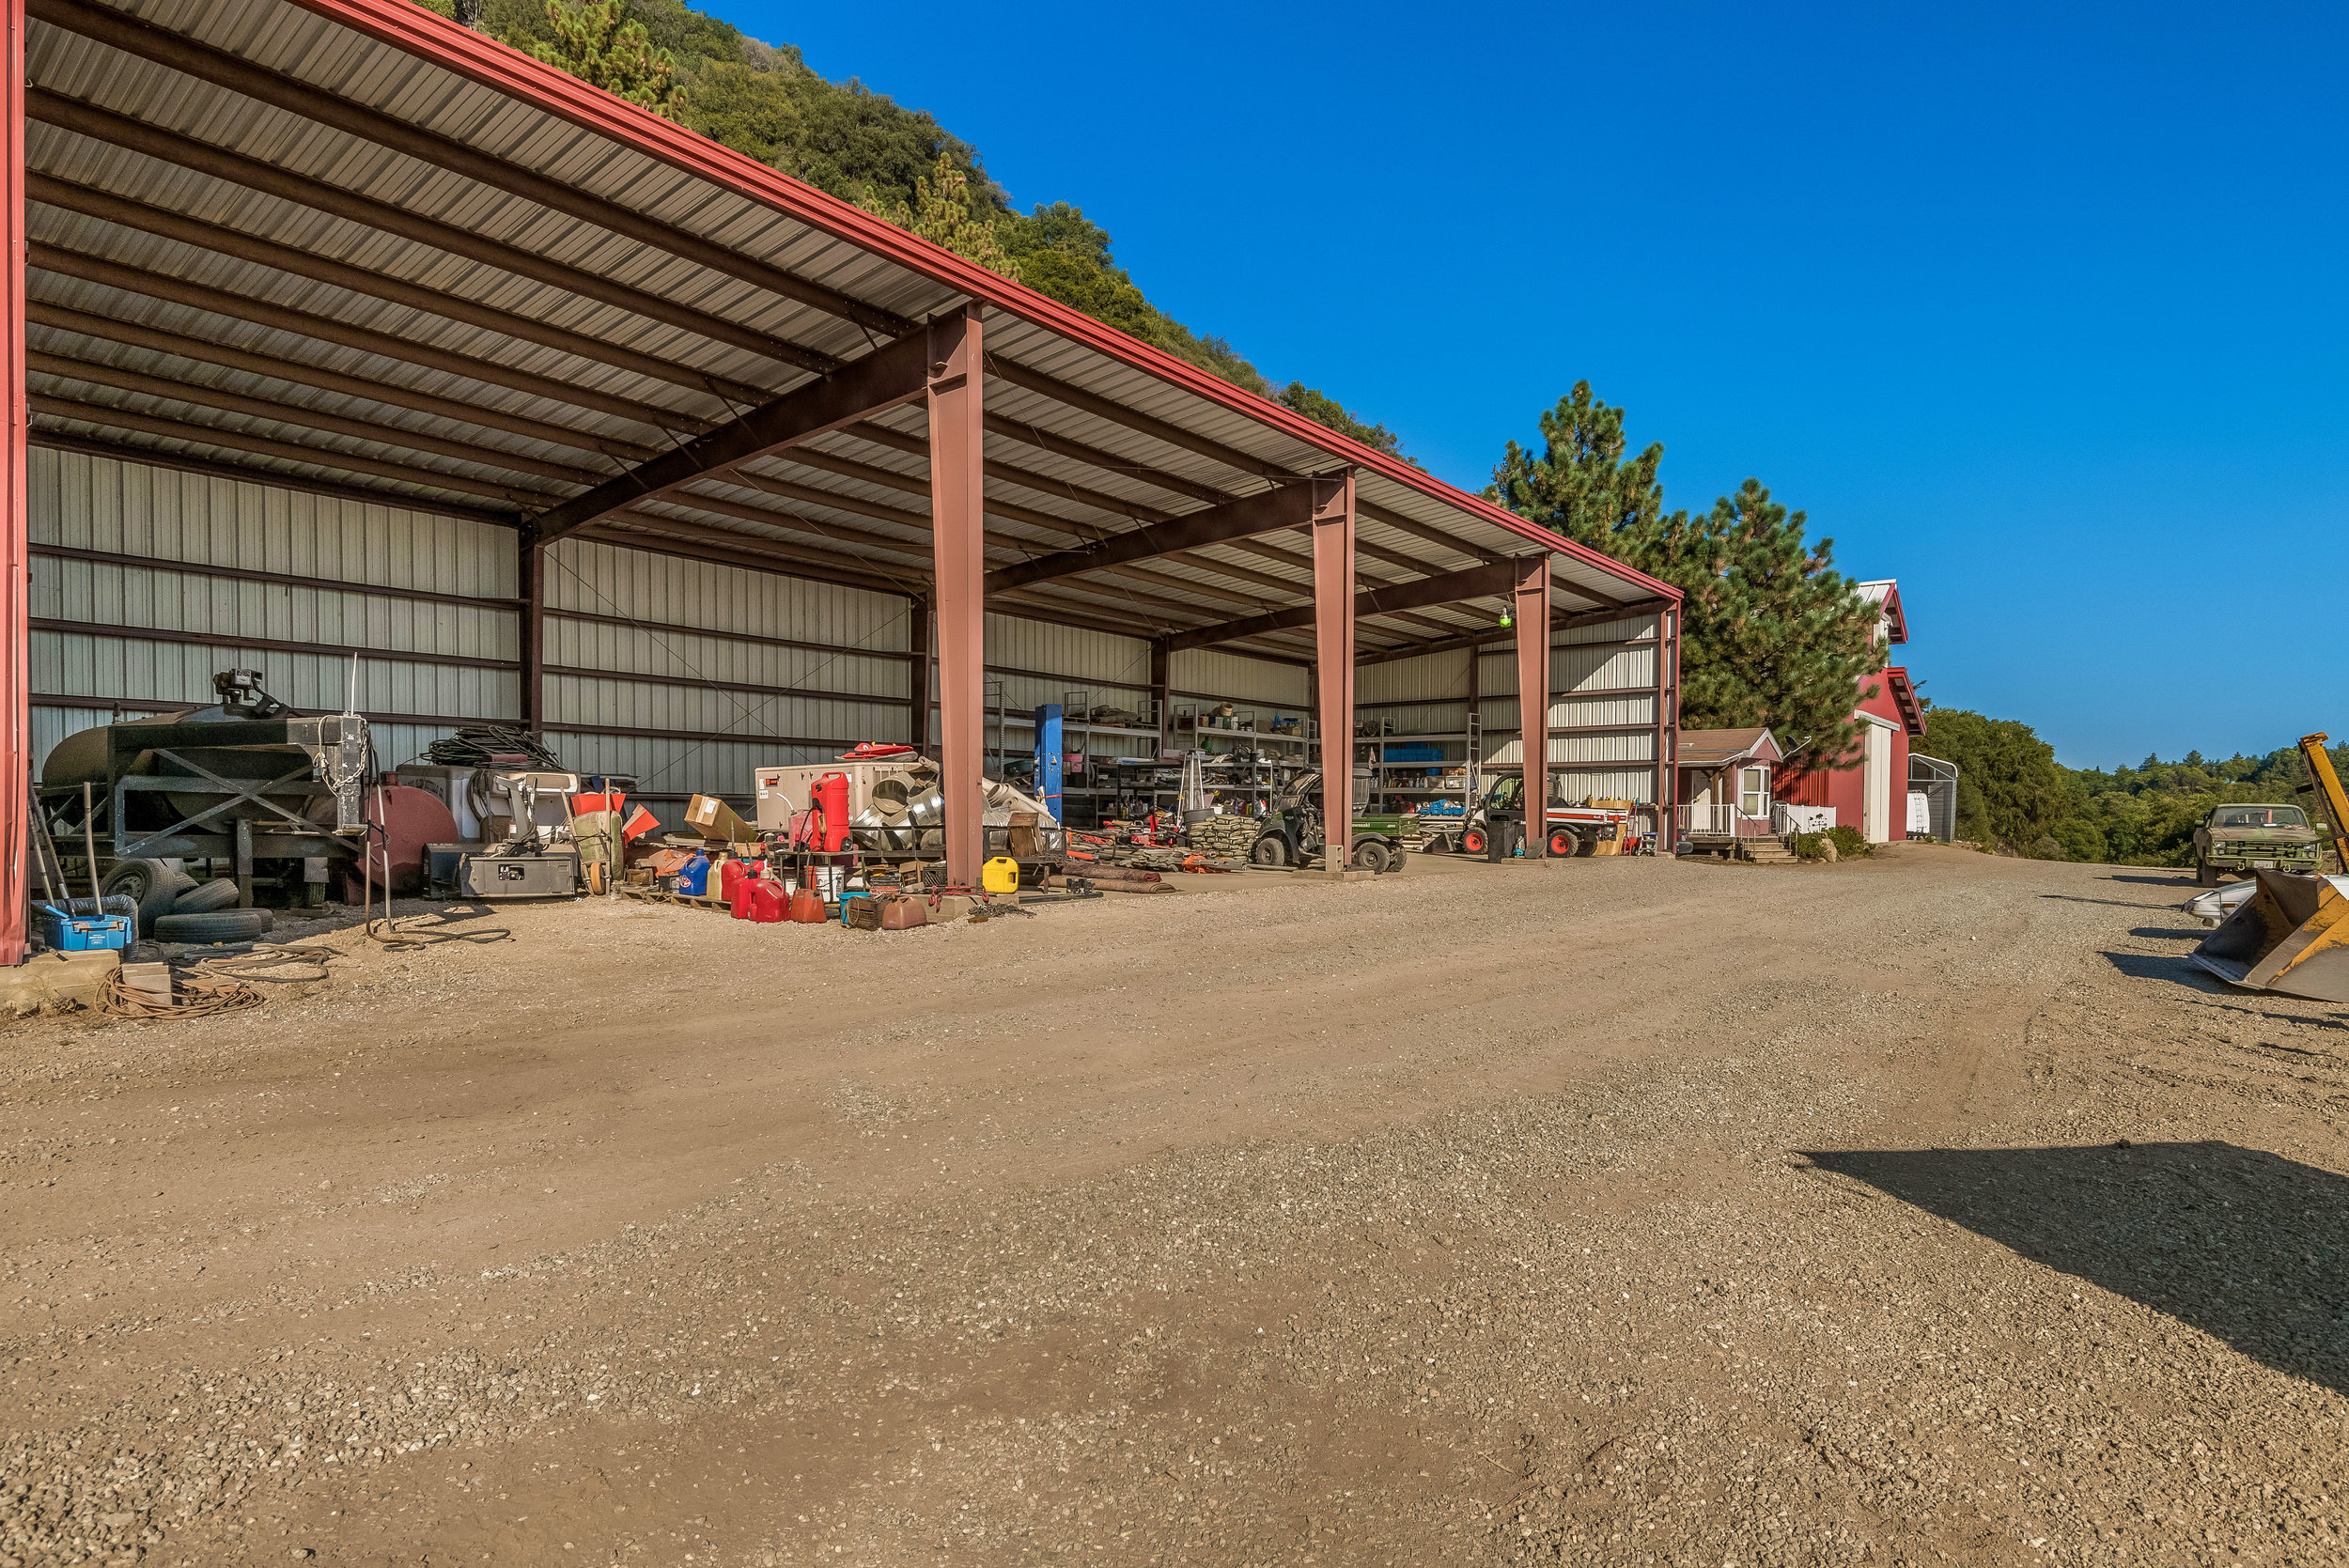 The Barns/ - Located on the Buffalo Ranch are two fully-functional barns: one for equipment and the other for storing hay. Multiple pieces of equipment are included in the offering, including several trailers, Toolcat Bobcat with a commercial snowblower, Kubota Tractor, John Deere 701 Backhoe and an operating firetruck.